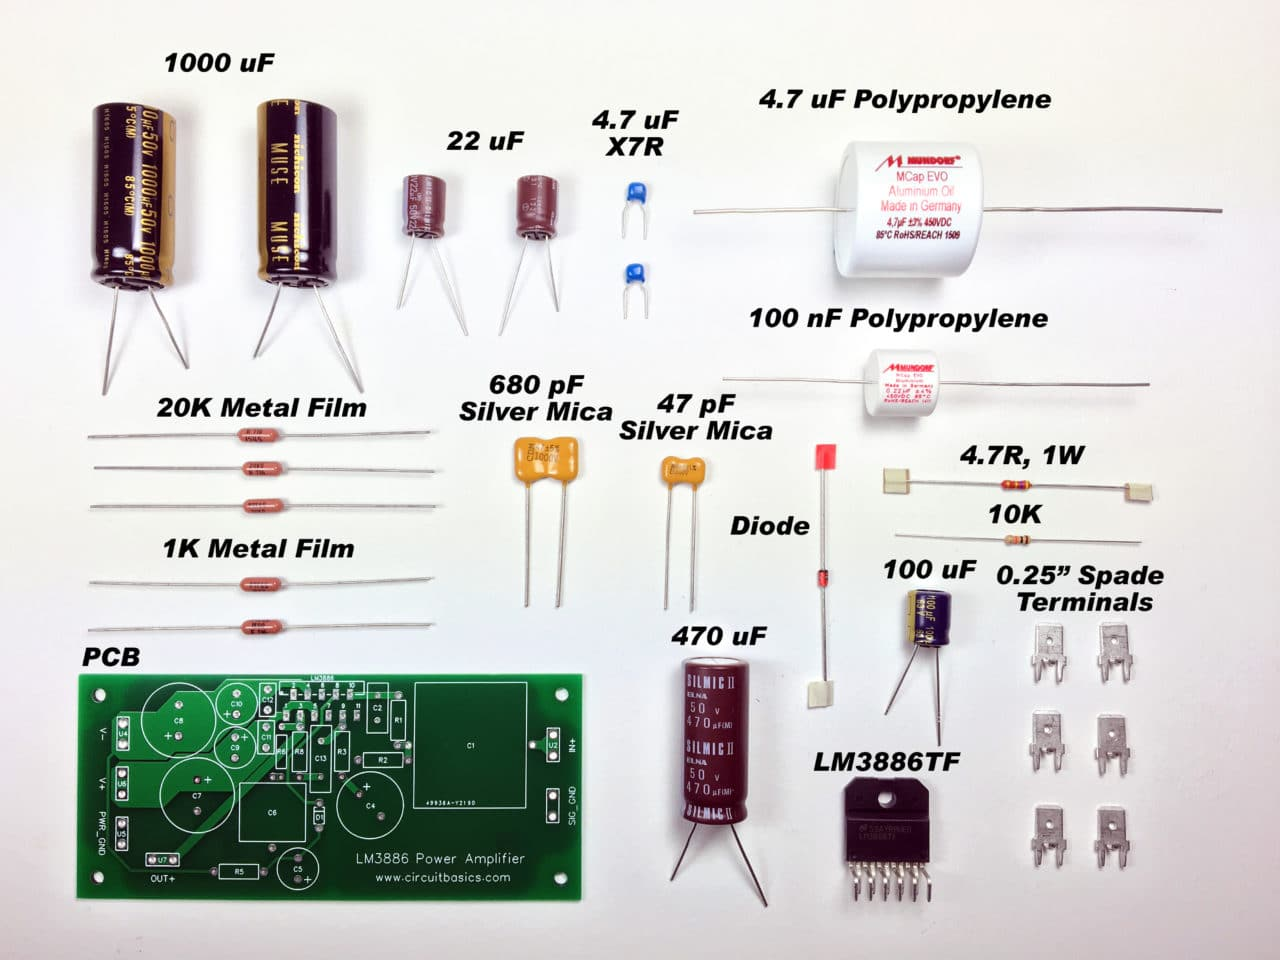 A Complete Guide To Design And Build Hi Fi Lm3886 Amplifier Avoiding Opamp Instability Problems In Singlesupply Applications The Total Cost Came About 118 For Both Channels Not Including Chassis Power Supply Wiring Parts You Can It Lot Less With Cheaper